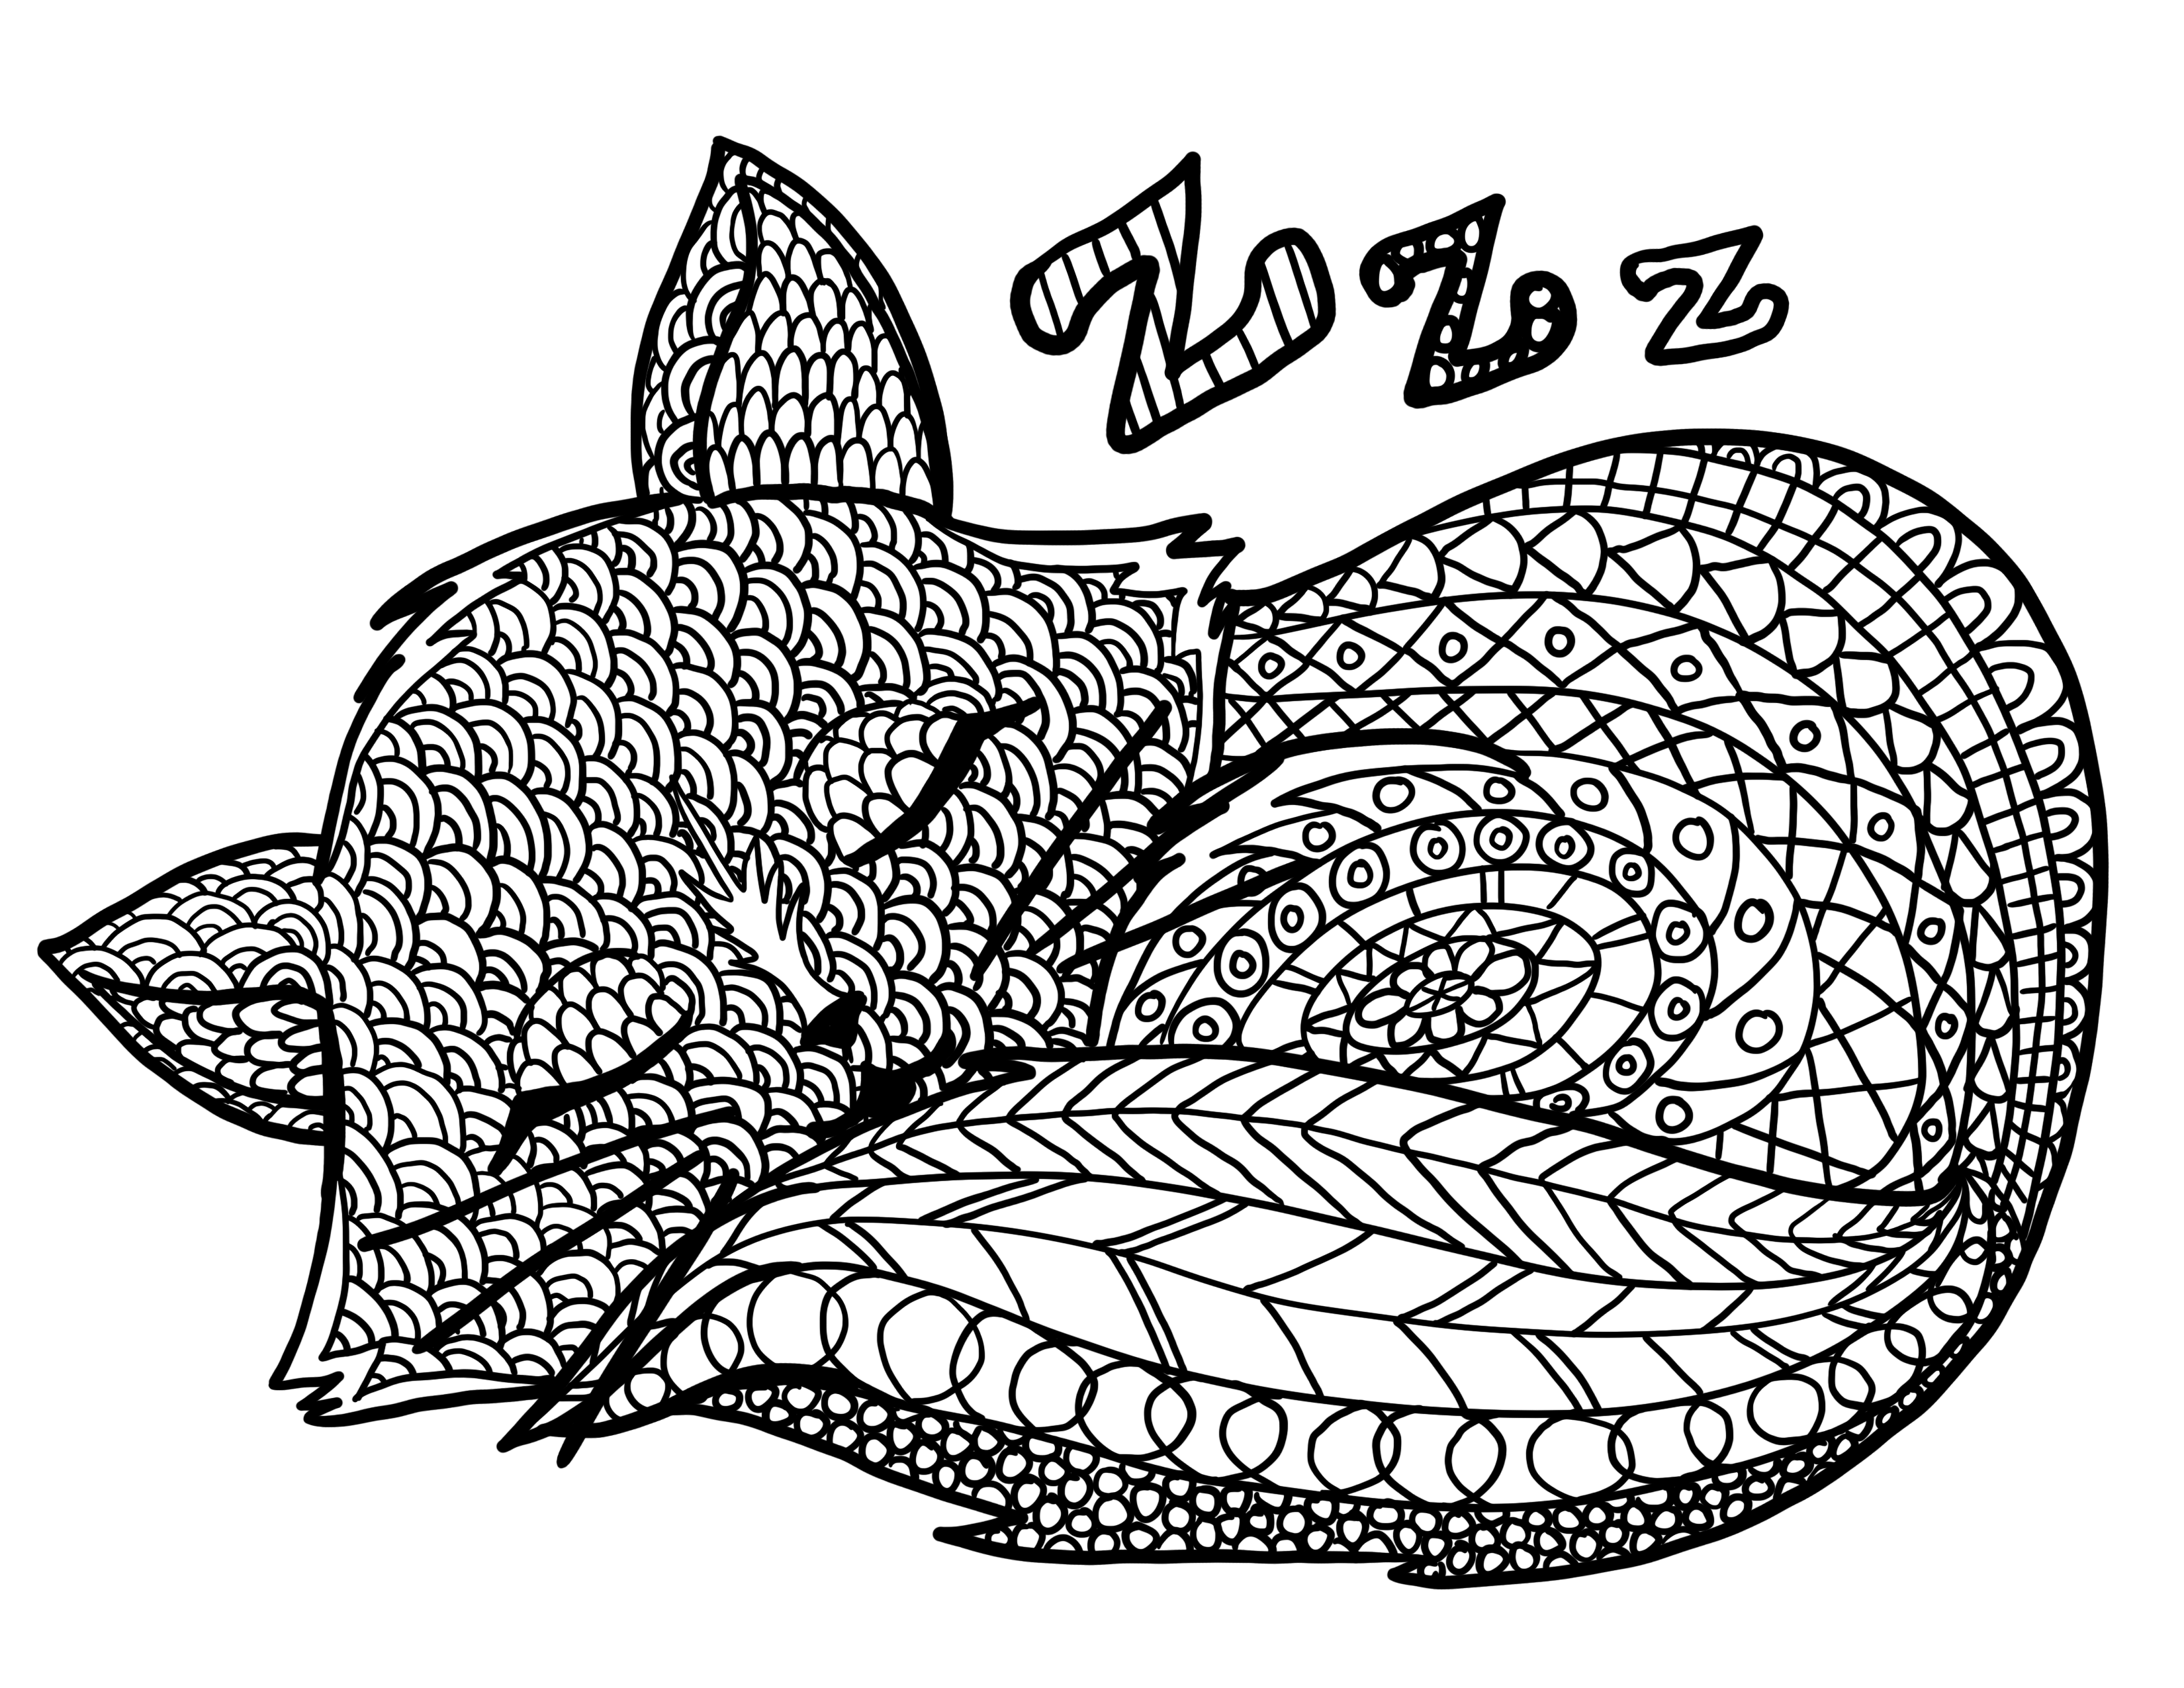 3300x2550 Hey Mom! Here's A Relaxing Coloring Page For You Colored Pencils